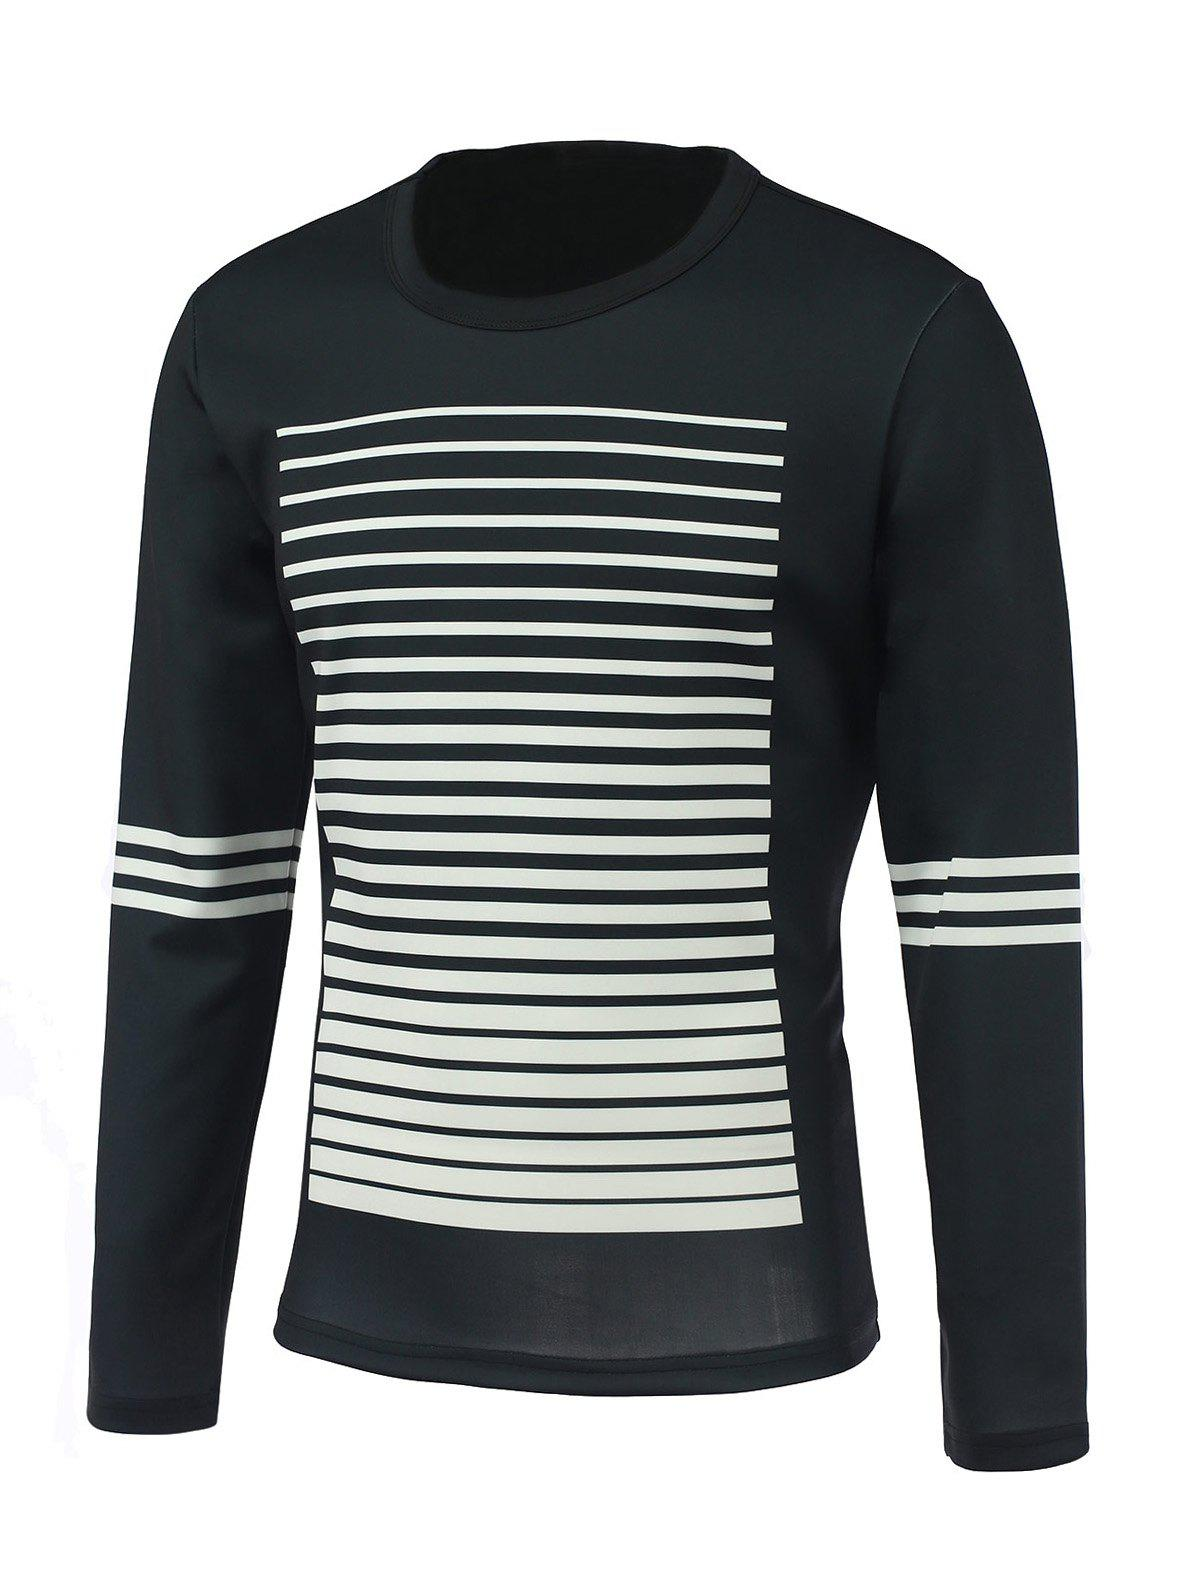 79c3fa5bfcd Gradient Stripe Print Round Neck Long Sleeve Sweatshirt